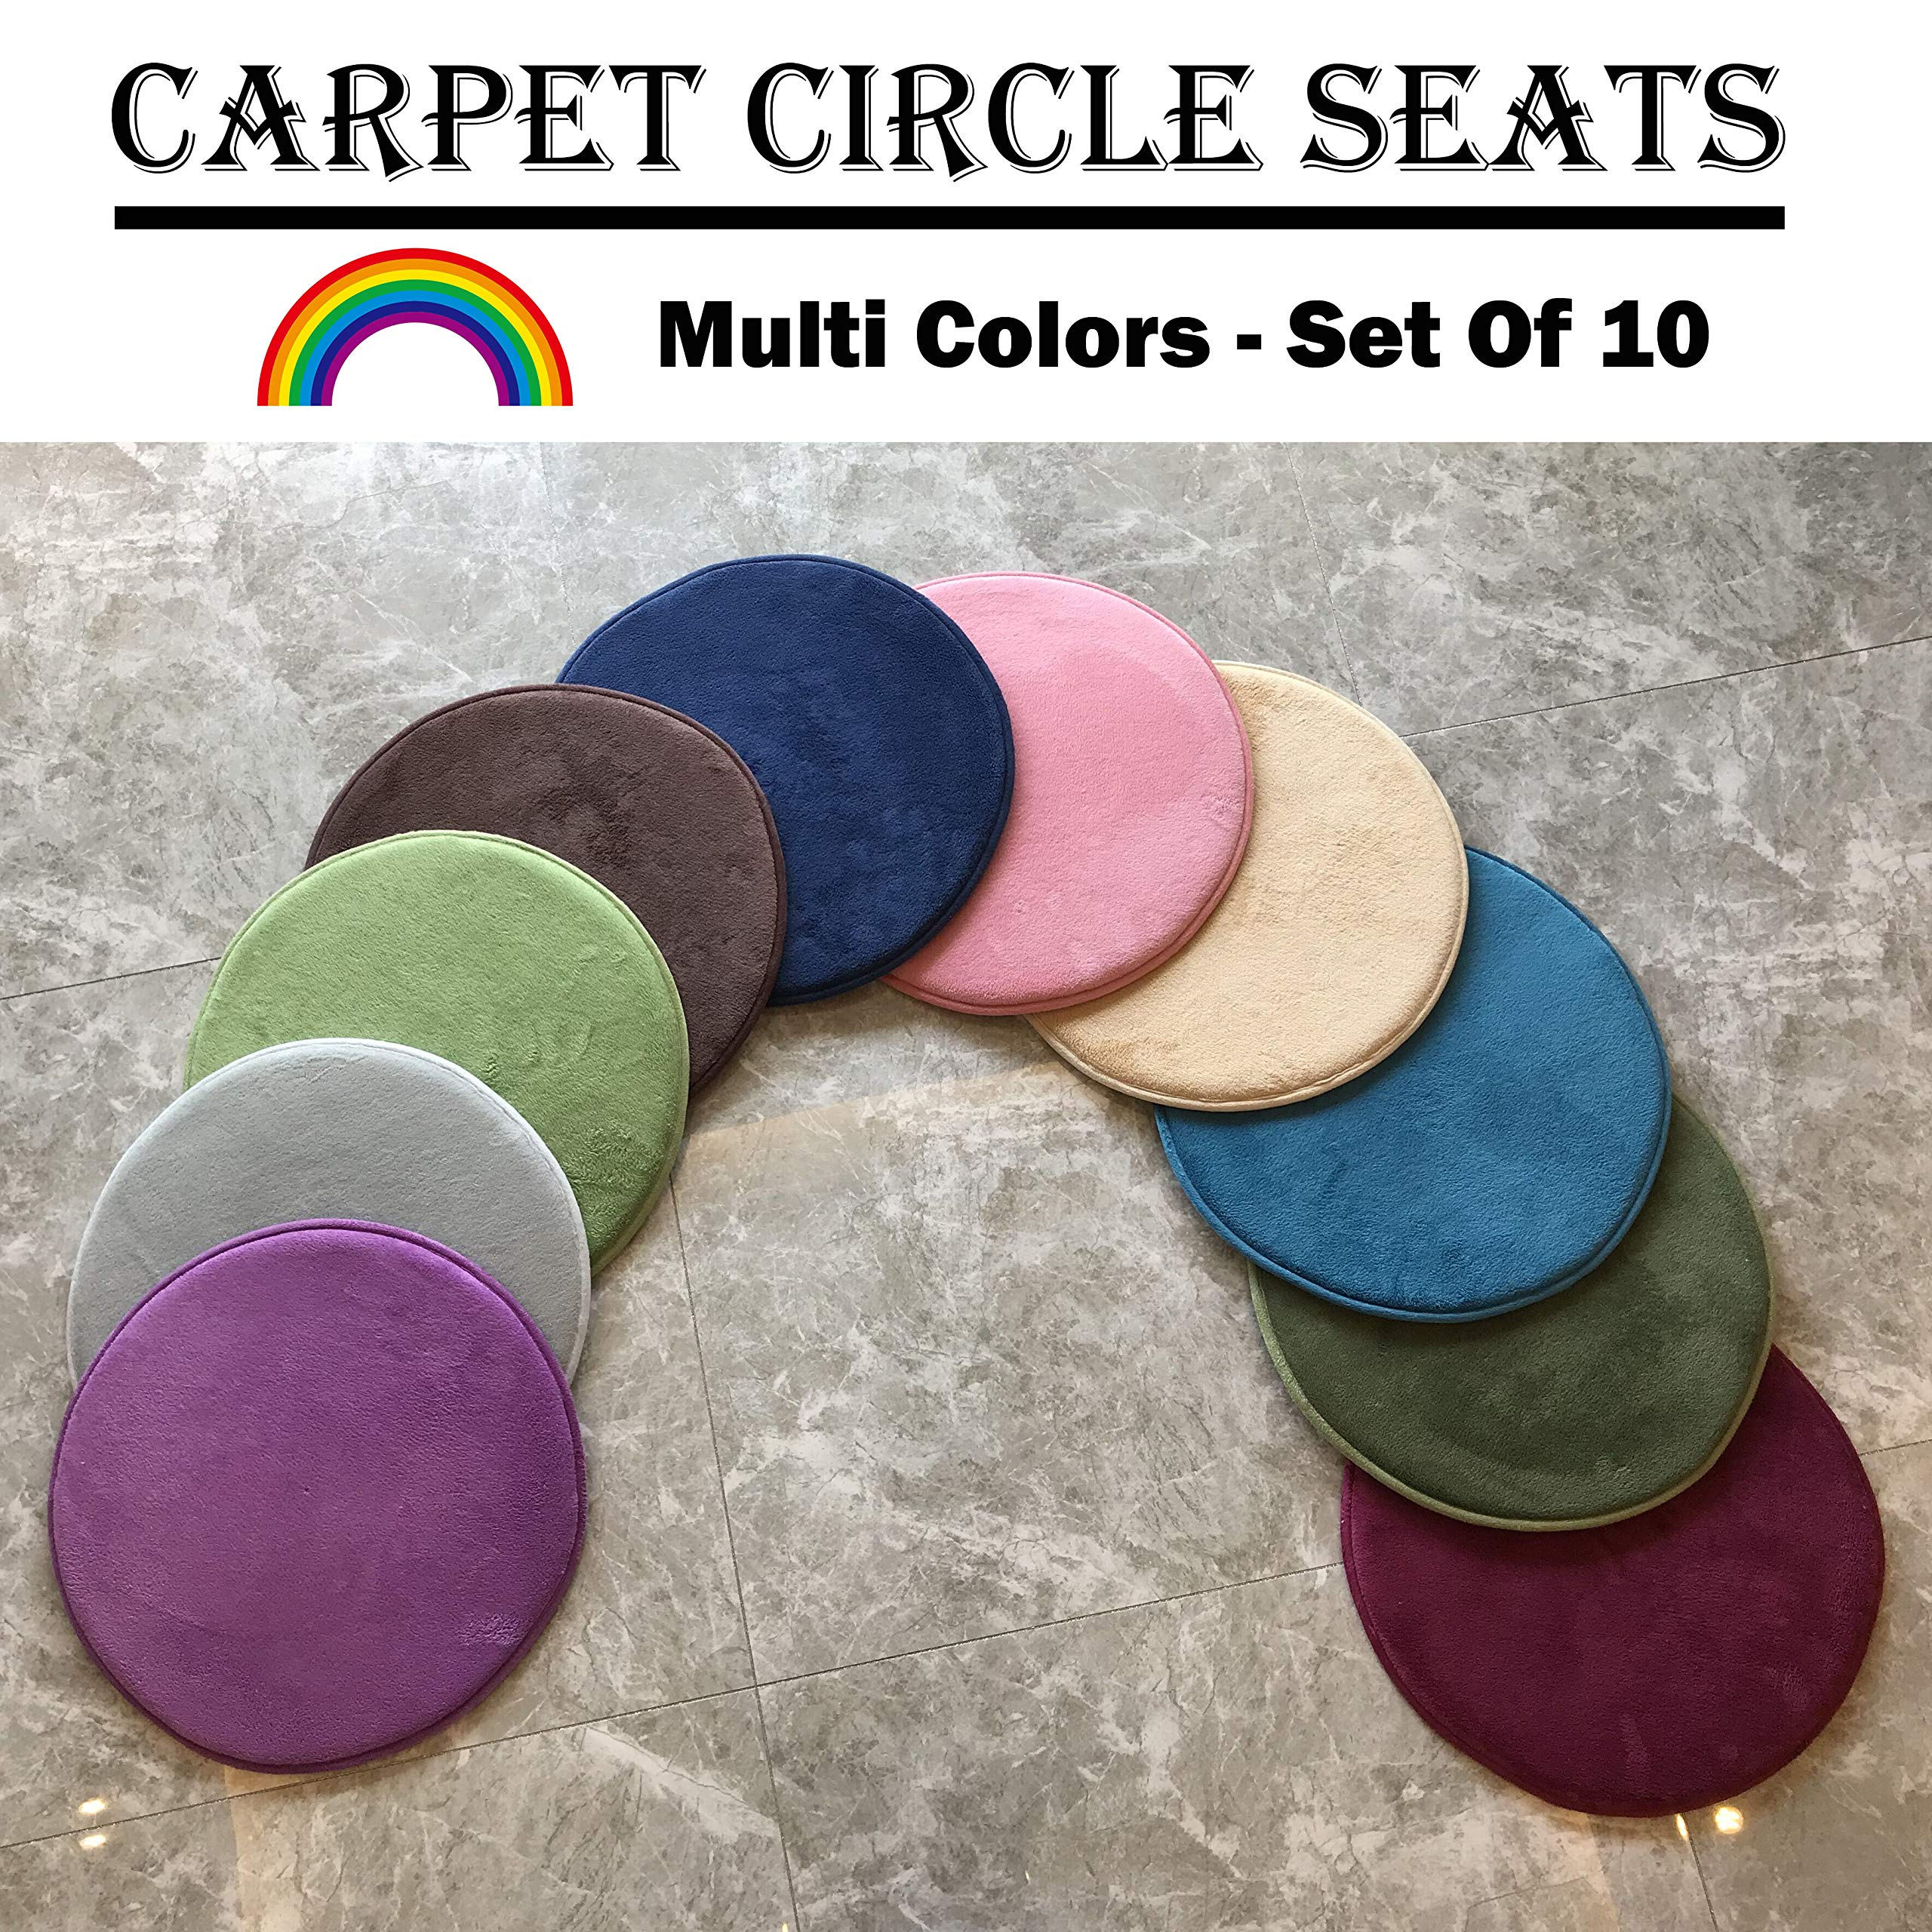 """10 Kids Floor Mat & Cushions - 20"""" Round Soft Warm Carpet Circle Seats   Colorful Rug Mats for Classroom, Home, Story Time, Group Activity, Play Area & Sitting Spot Marker"""